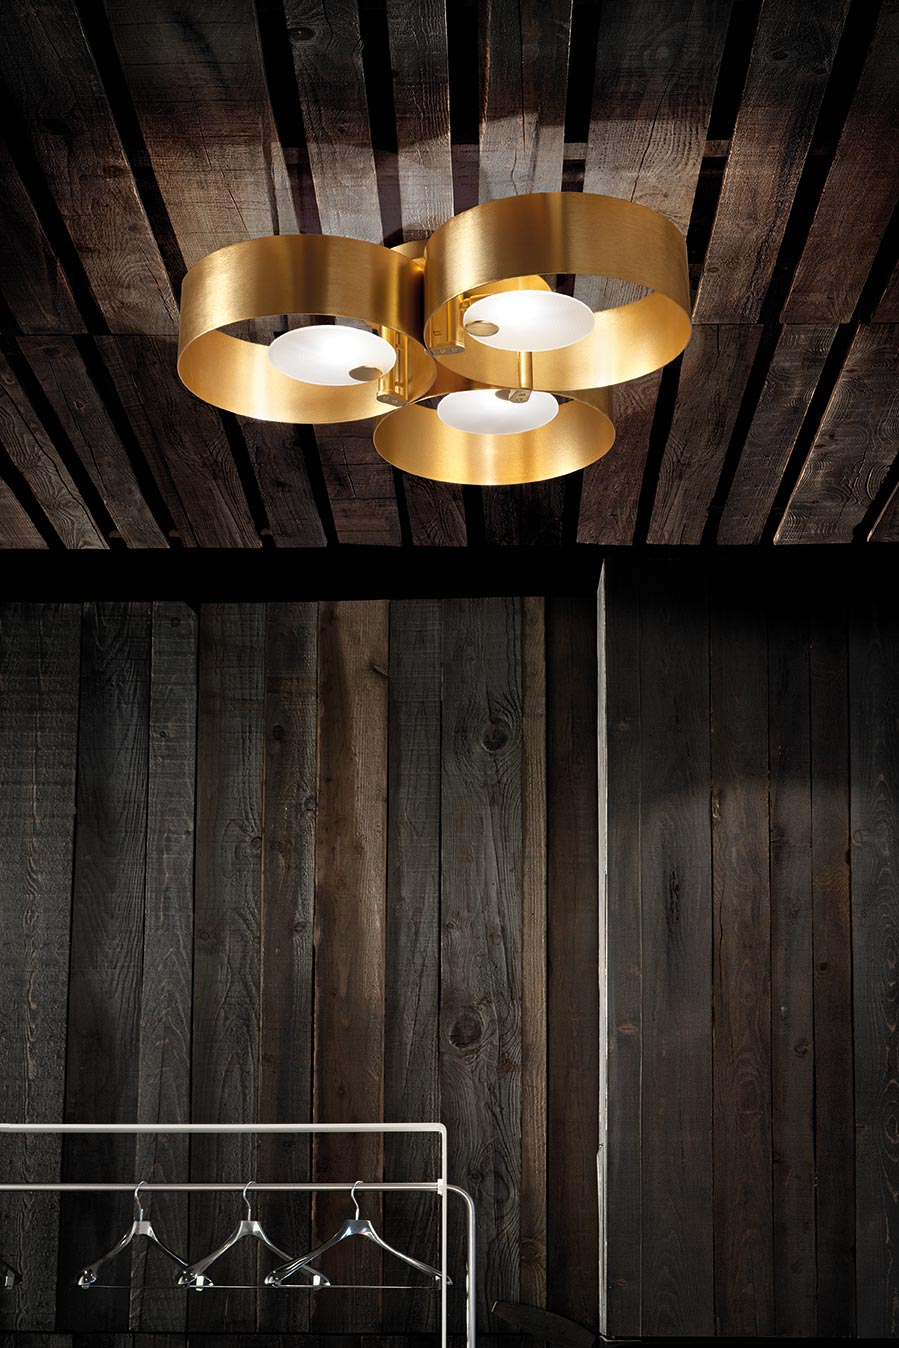 Contemporary Gold Ceiling Light 3 Lights Sound Collection Masiero Murano And Crystal Chandeliers Lamps And Wall Lights Ref 20010057